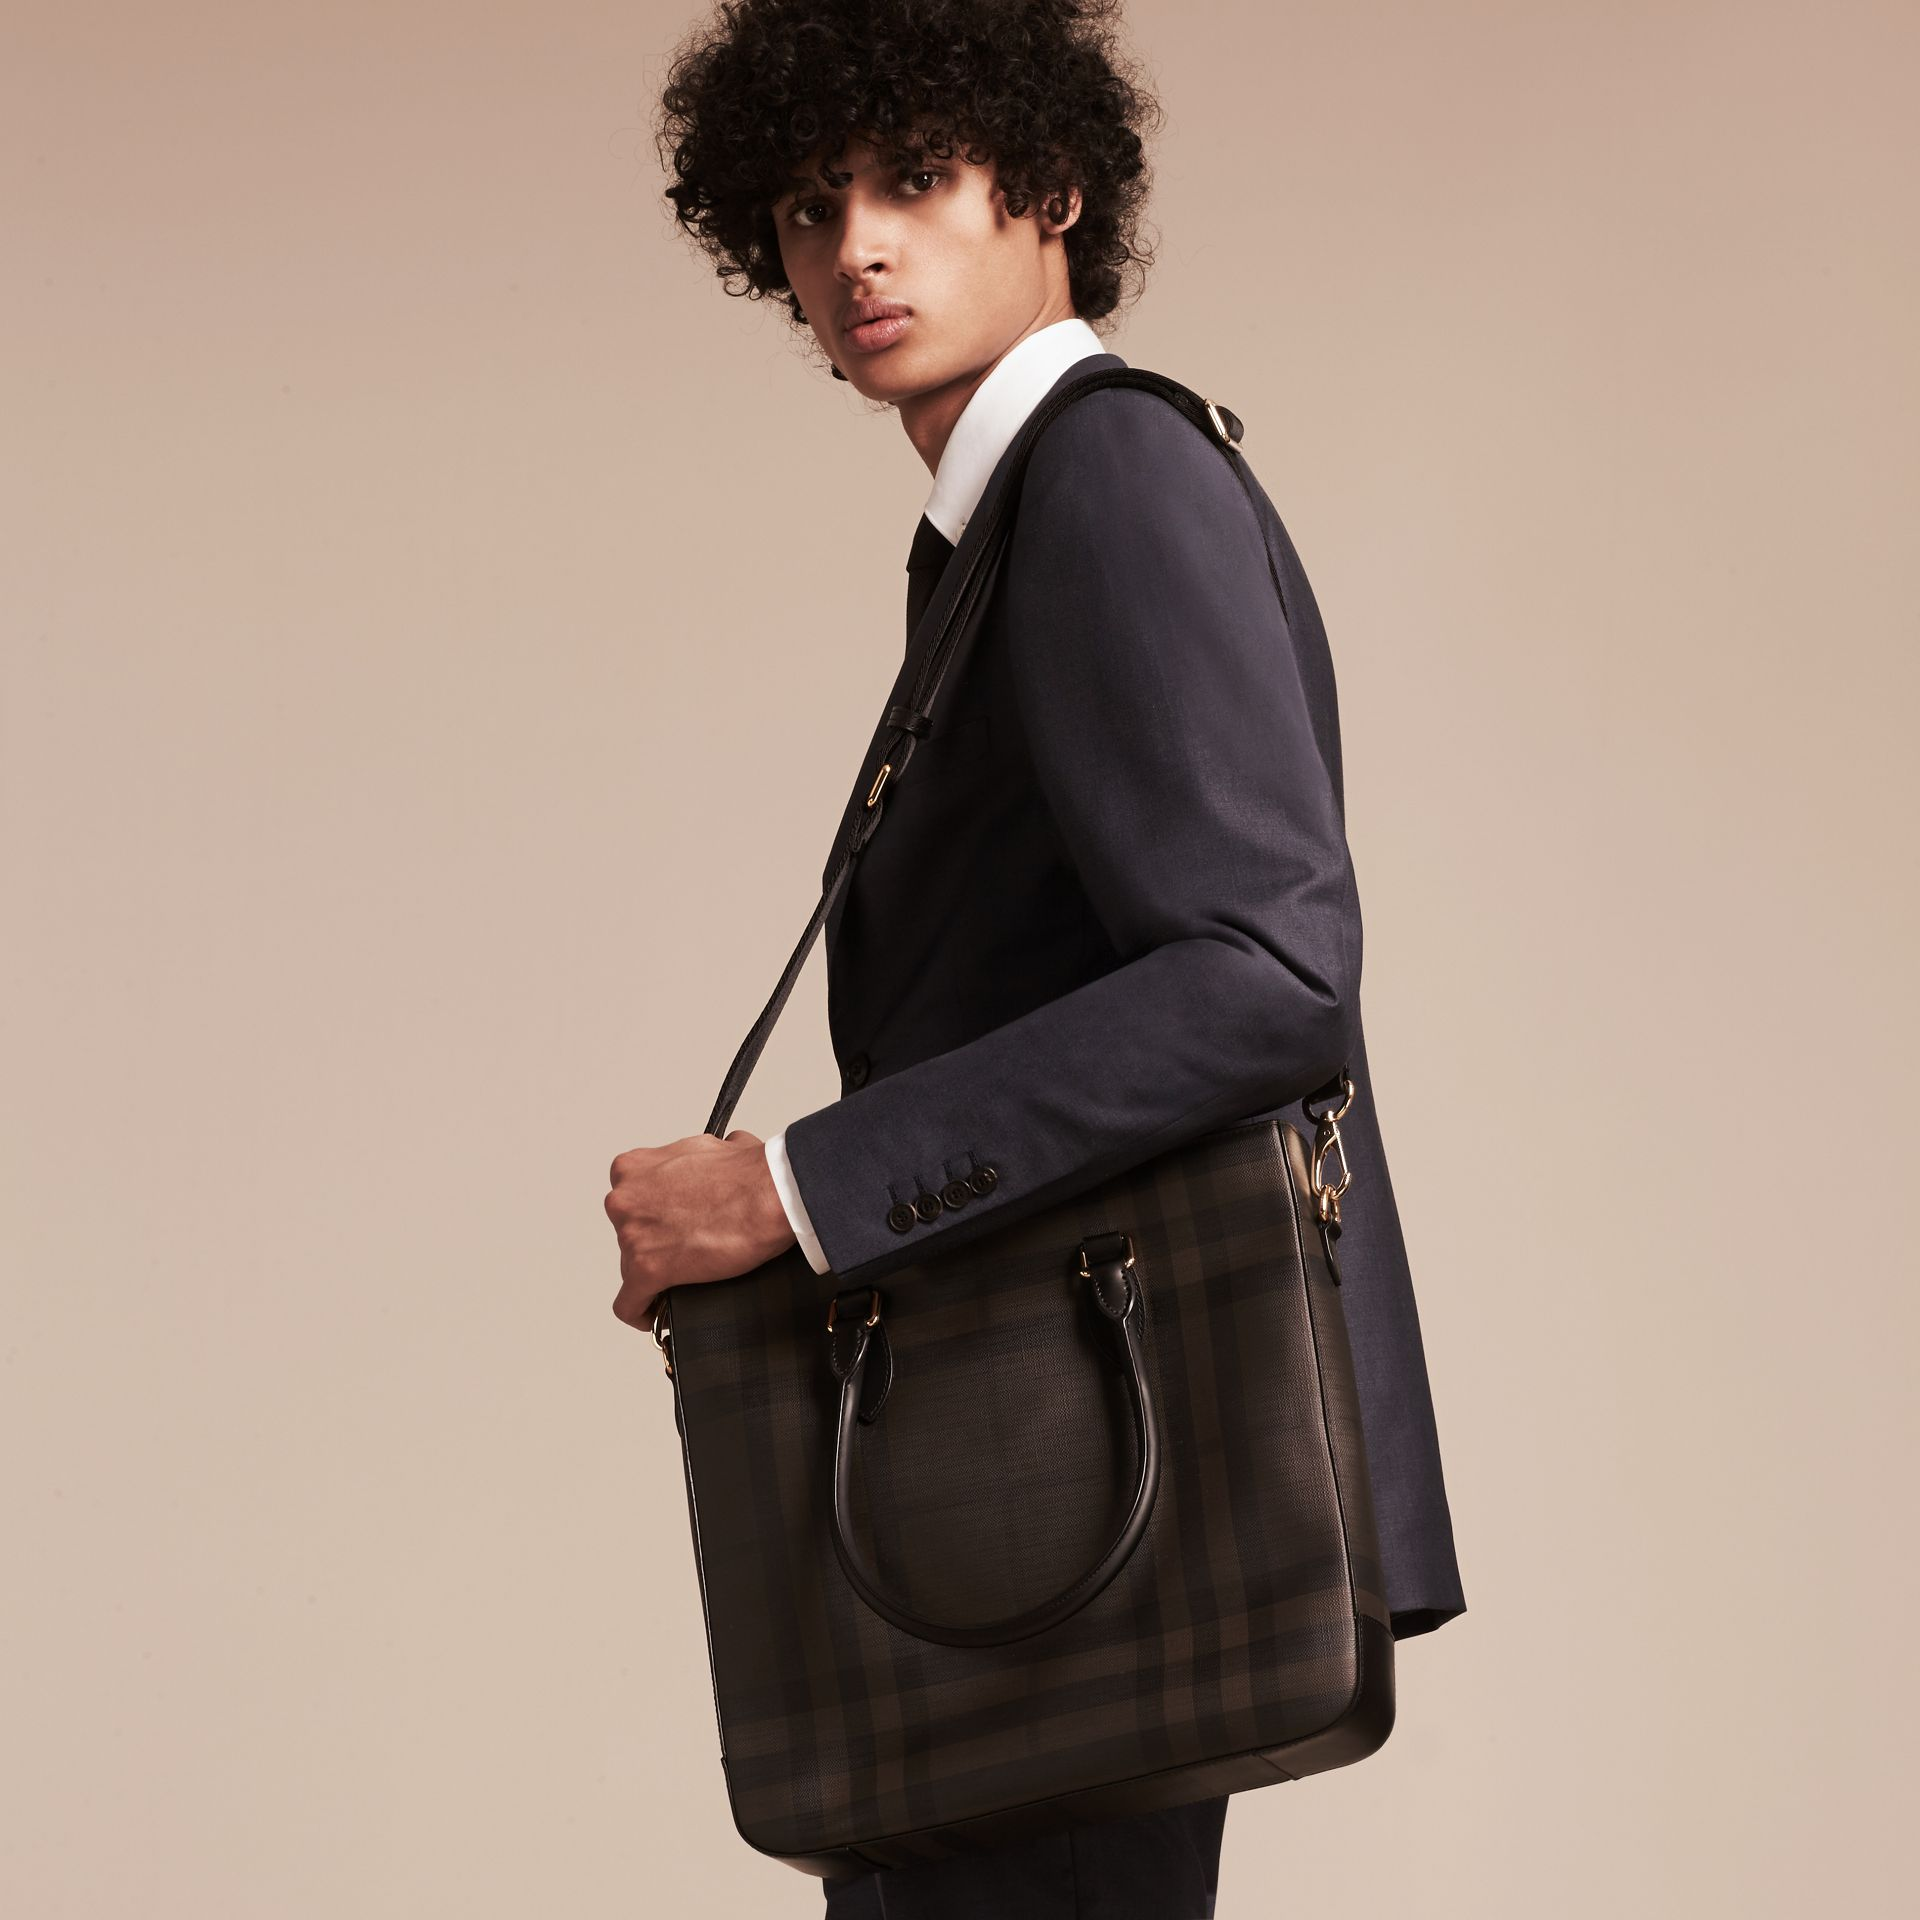 Sac tote à motif London check (Noir/chocolat) - Homme | Burberry - photo de la galerie 3